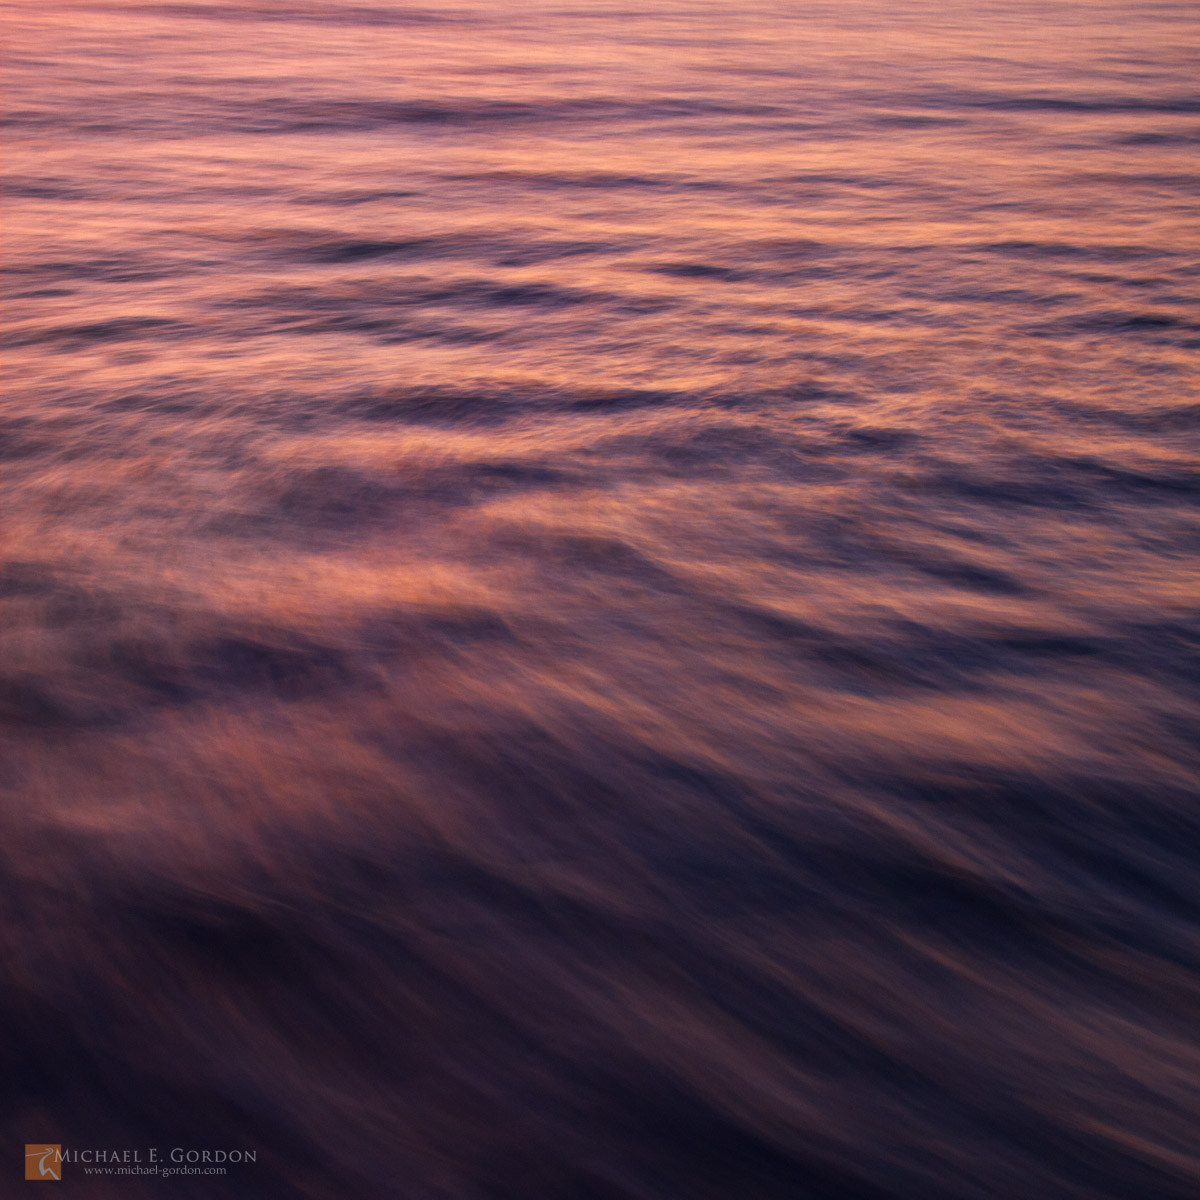 color,photo,picture,Pacific Ocean,waves,current,reflection,wind,breeze,motion,study,blue,purple,red,orange,blur,soft,peaceful,calm,tranquil, photo